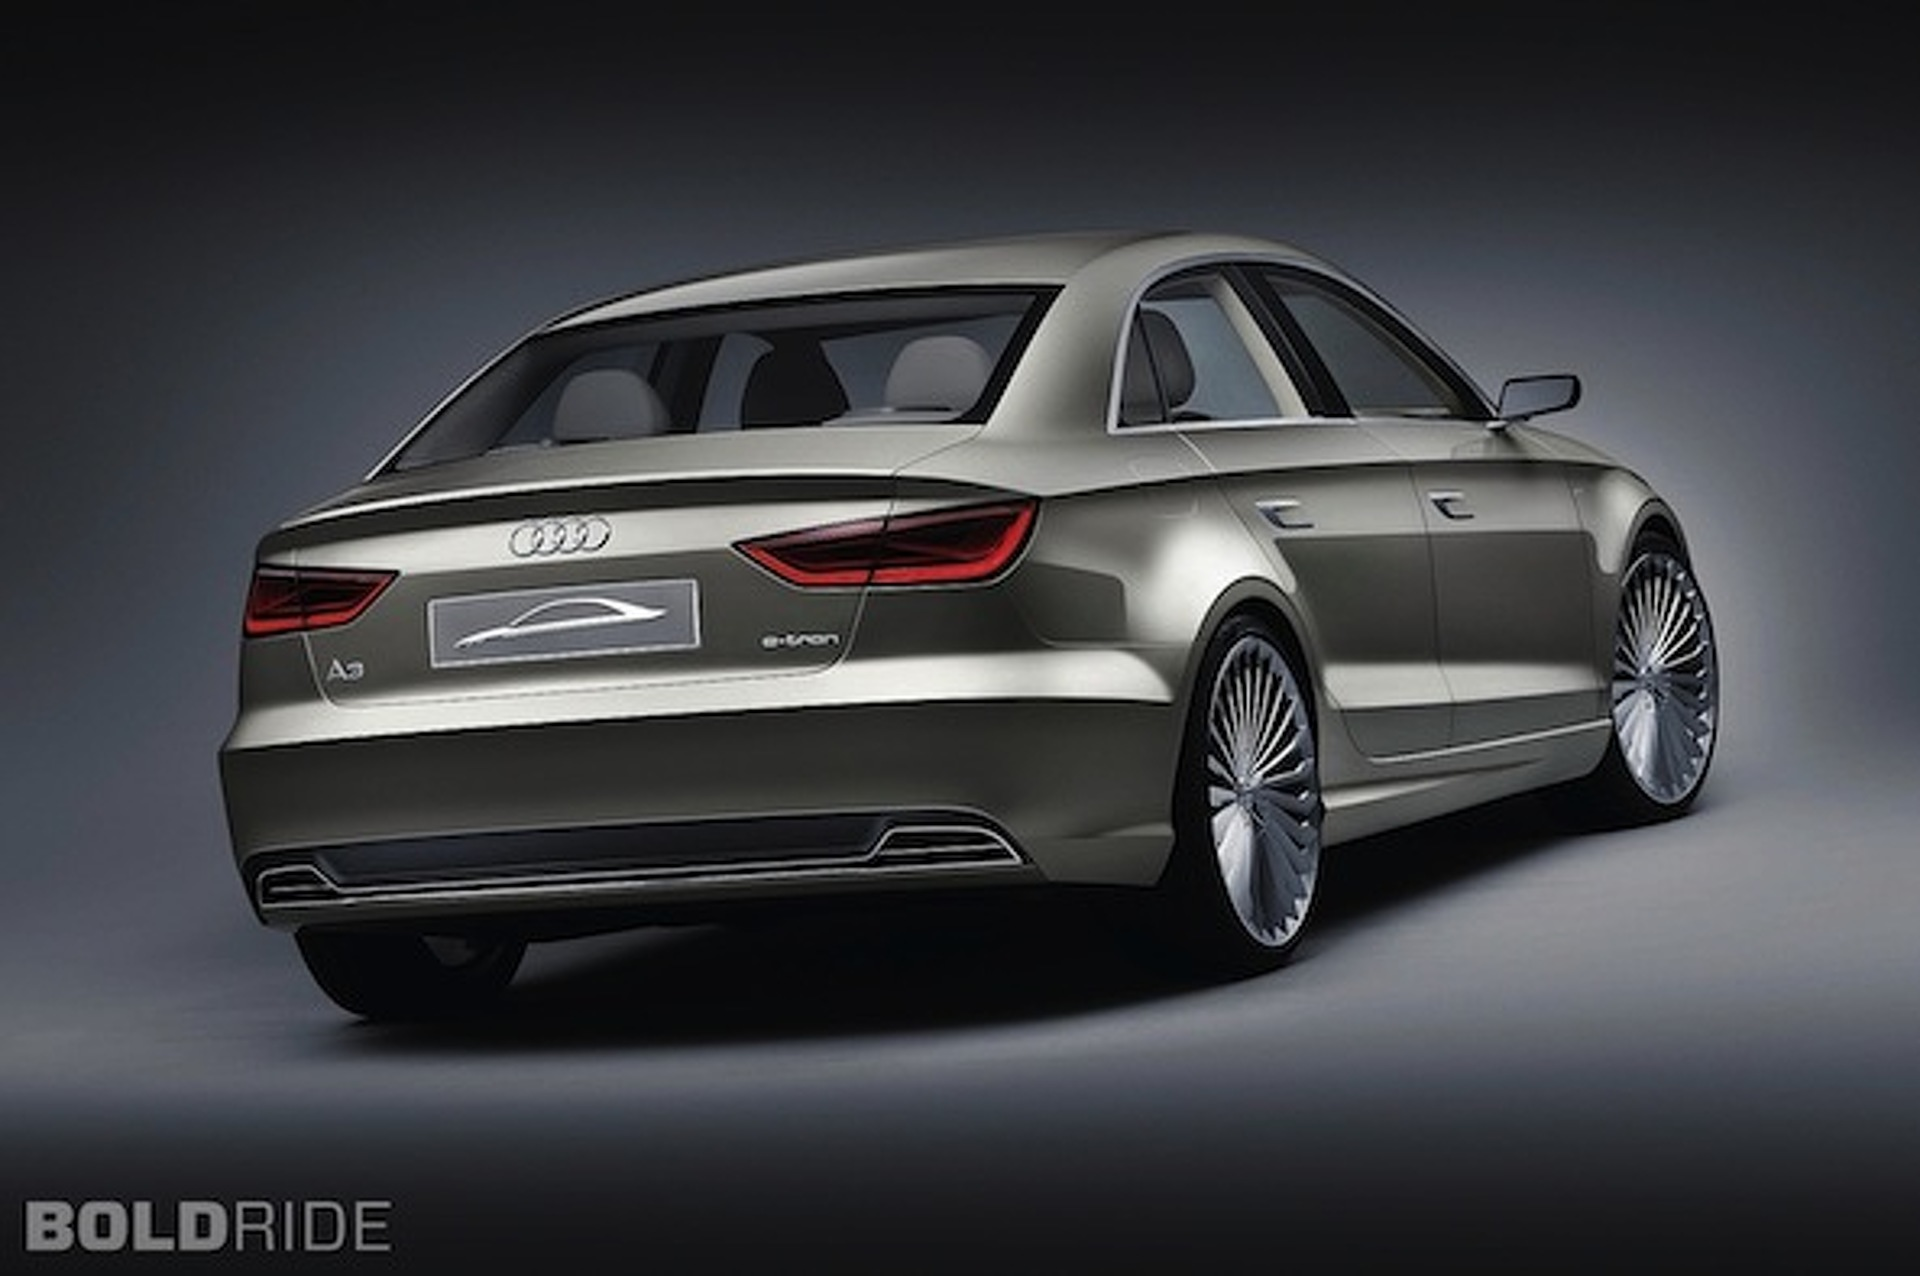 Audi A3 e-tron Planned for 2015 Launch